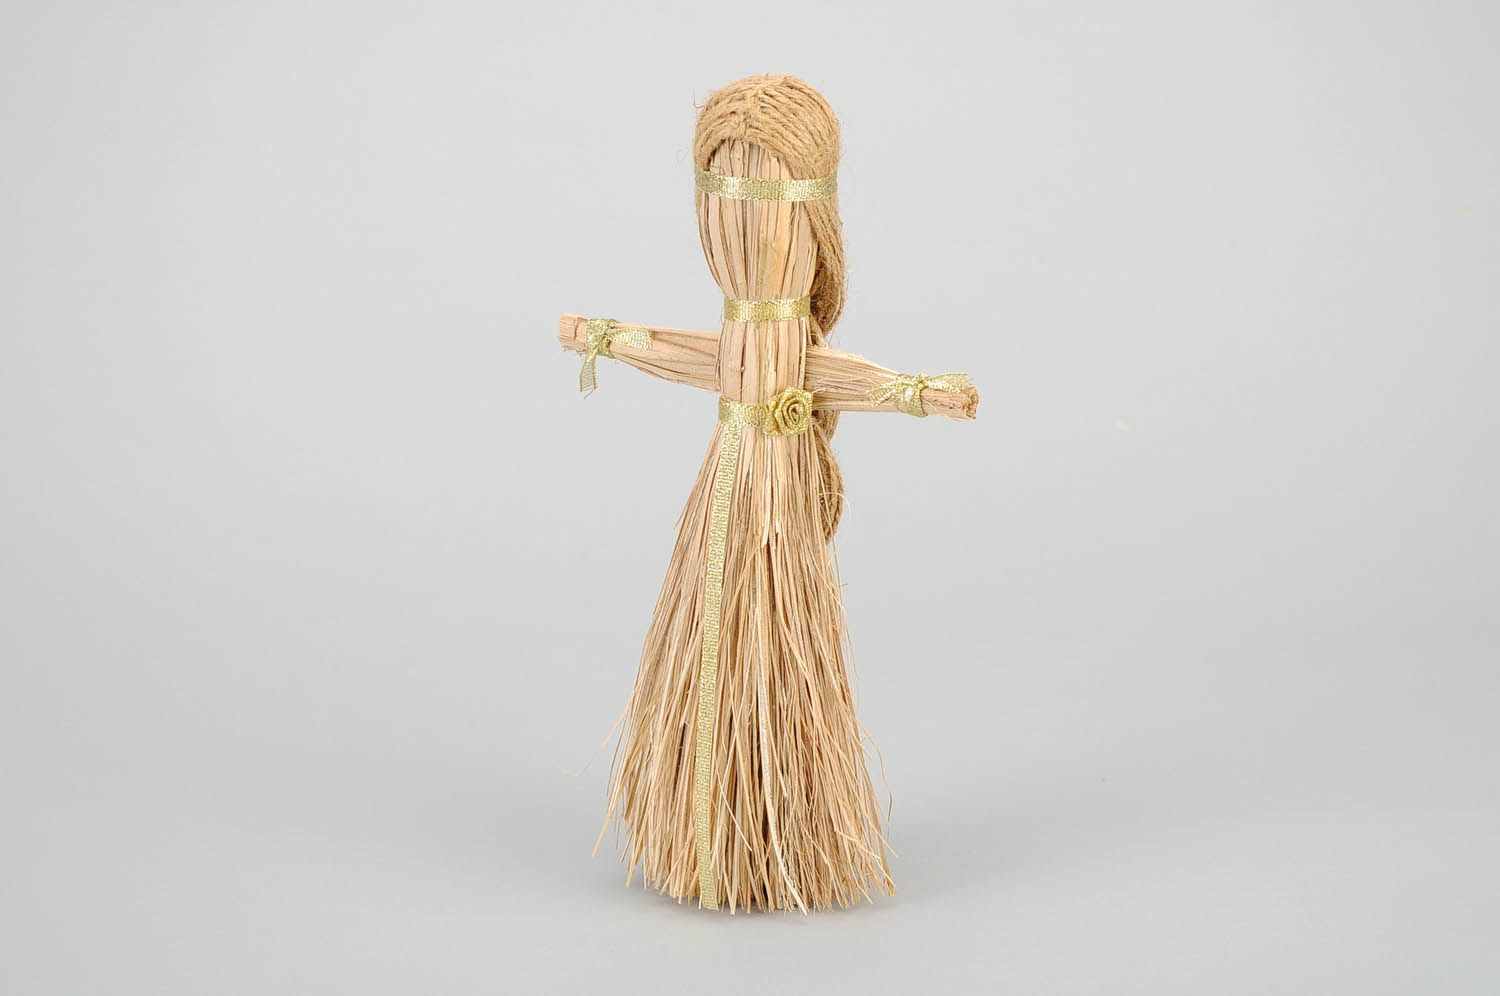 Amulet doll made of natural material photo 3